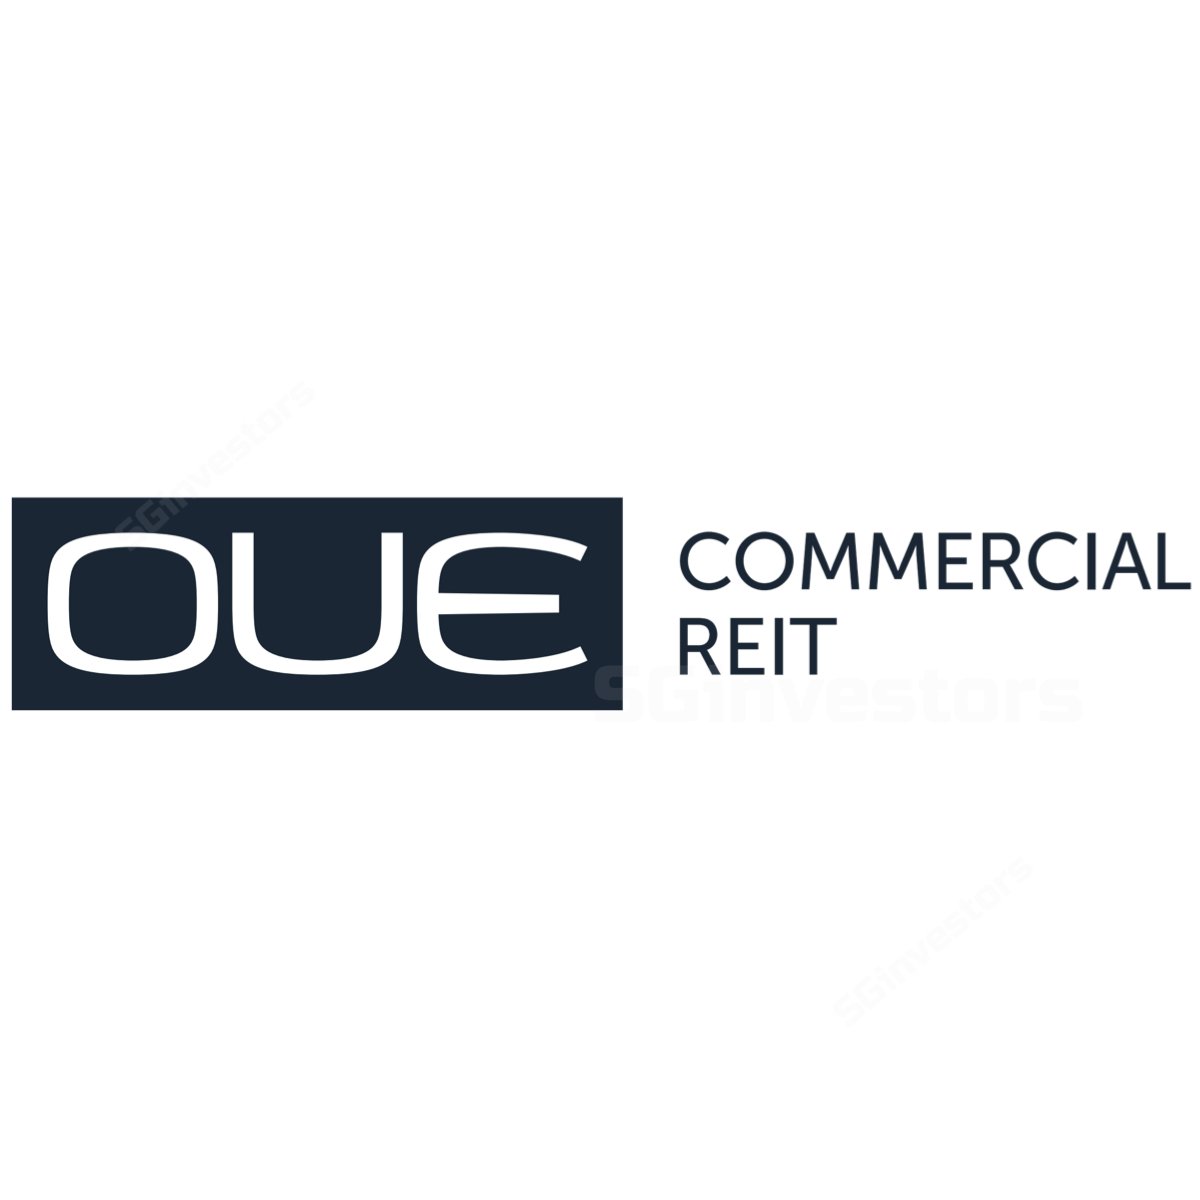 OUE Commercial REIT - OCBC Investment 2017-08-28: Diversifying Sources Of Funding